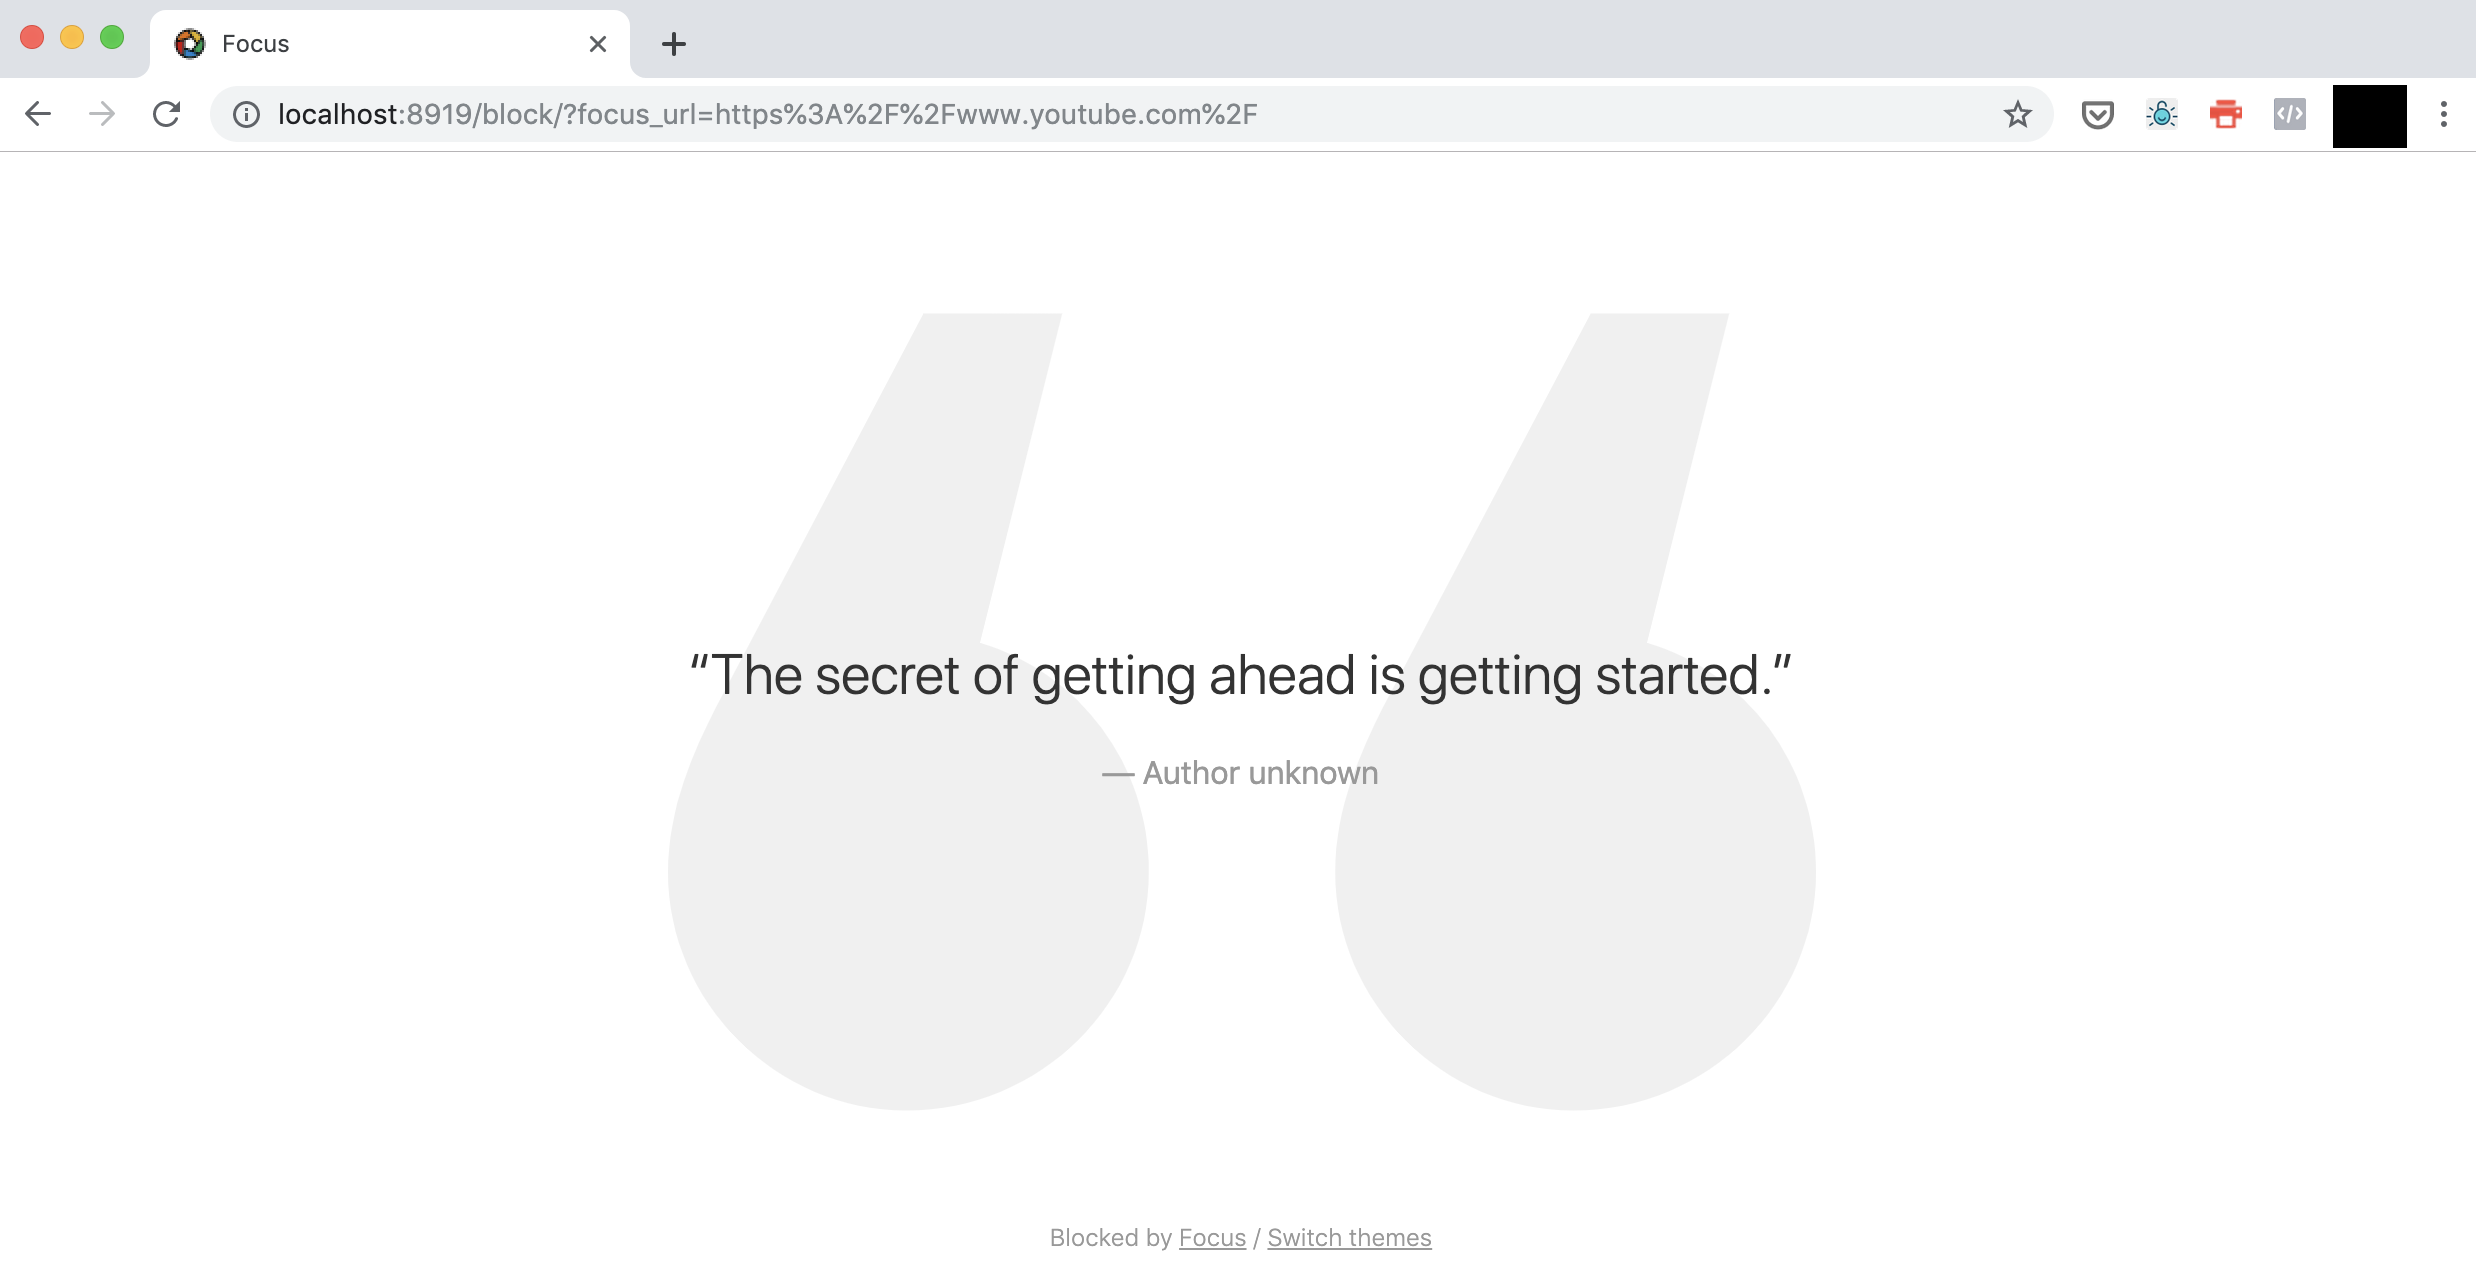 blocked website replaced by a quote